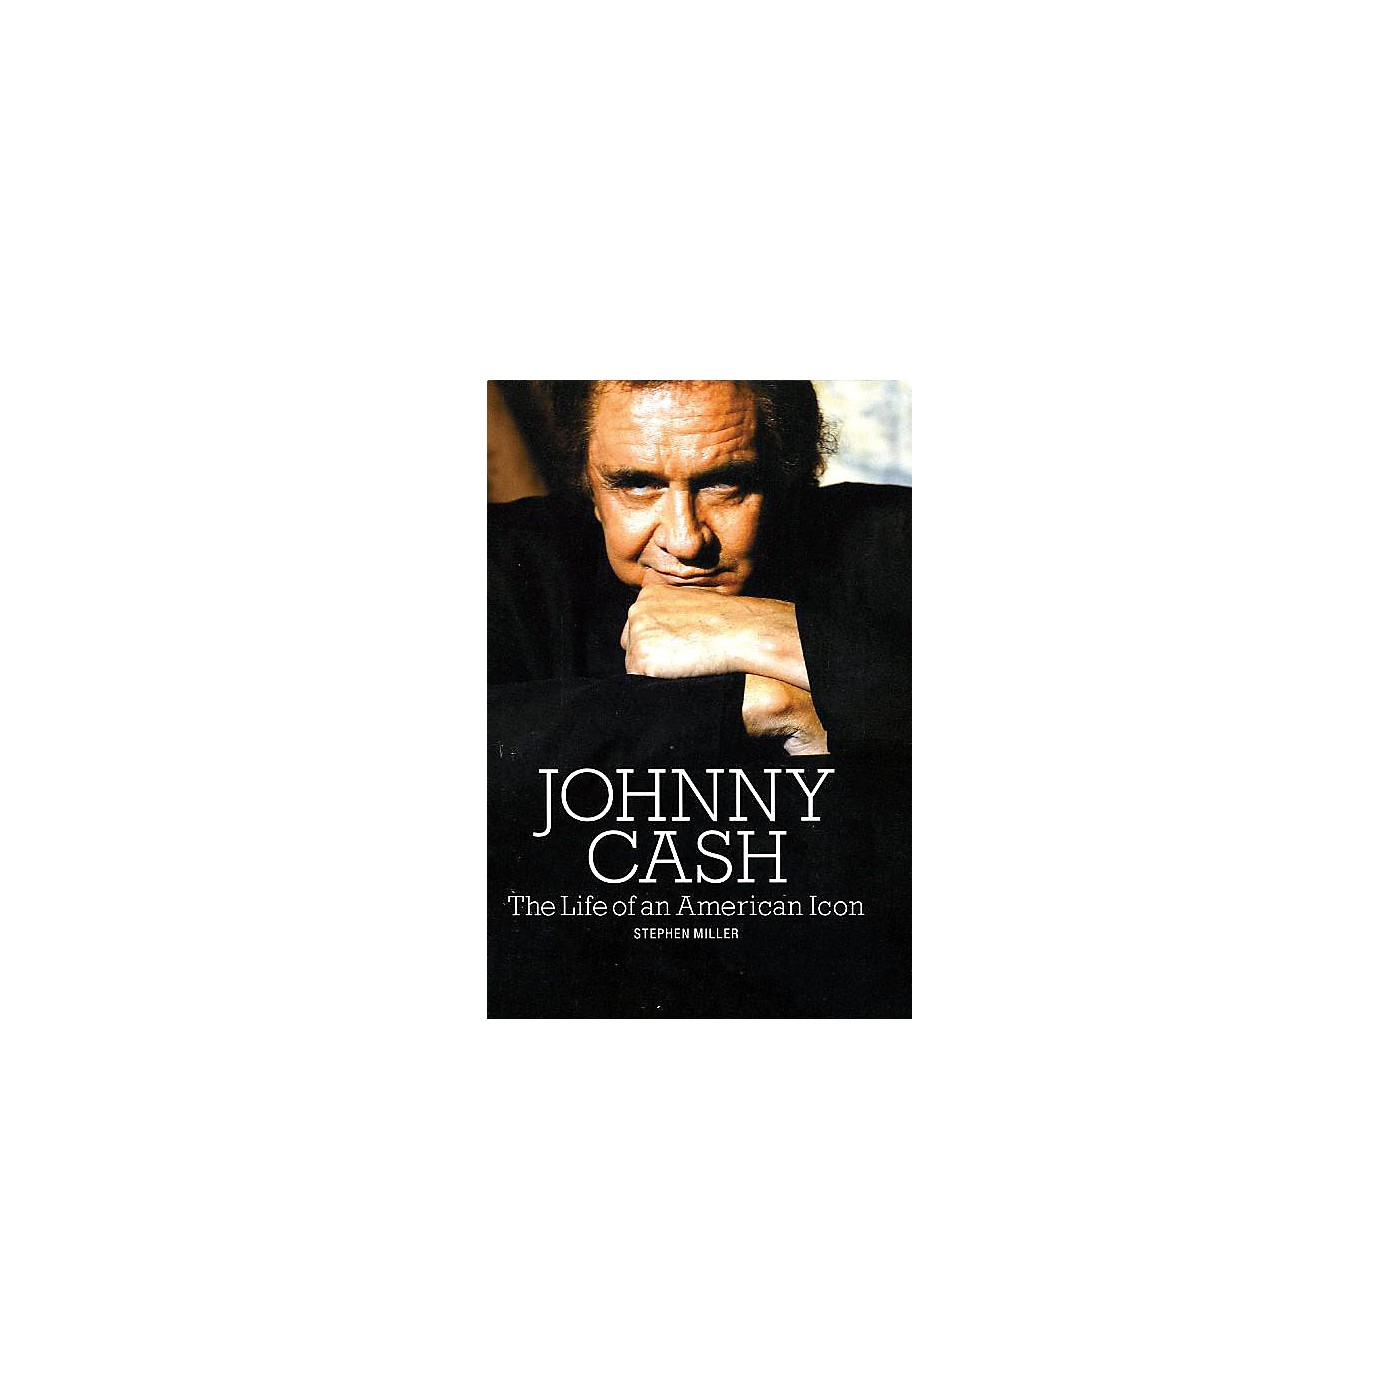 Omnibus Johnny Cash (The Life of an American Icon) Omnibus Press Series Softcover thumbnail